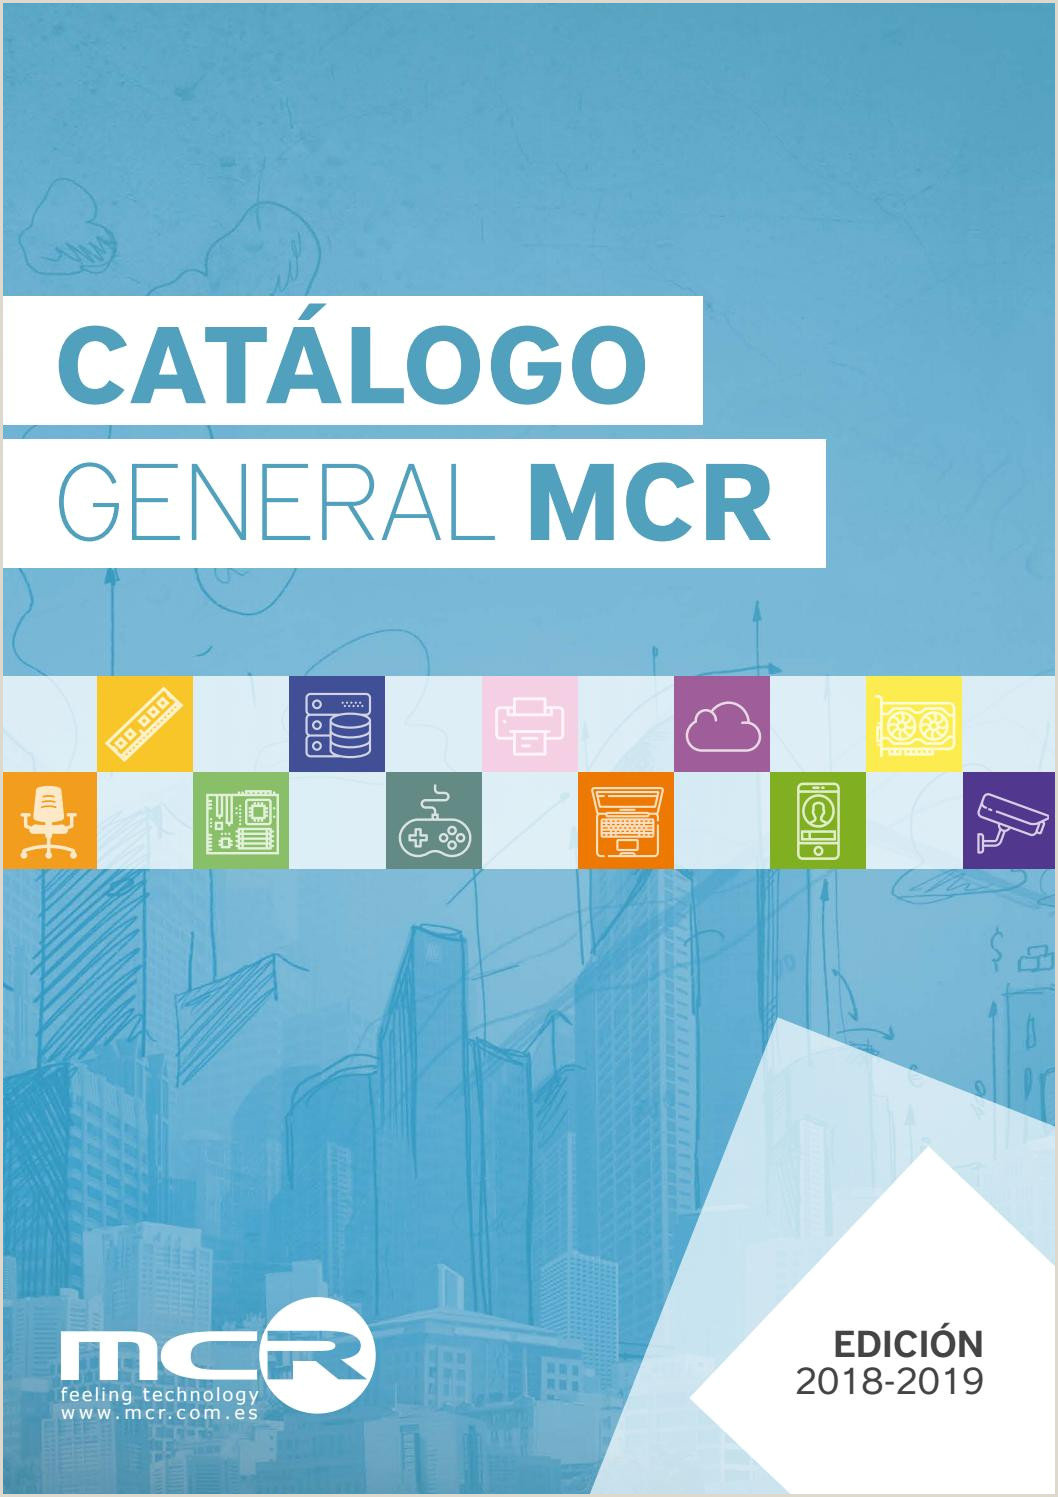 Catálogo General MCR 2018 2019 by MCR infoelectronic issuu